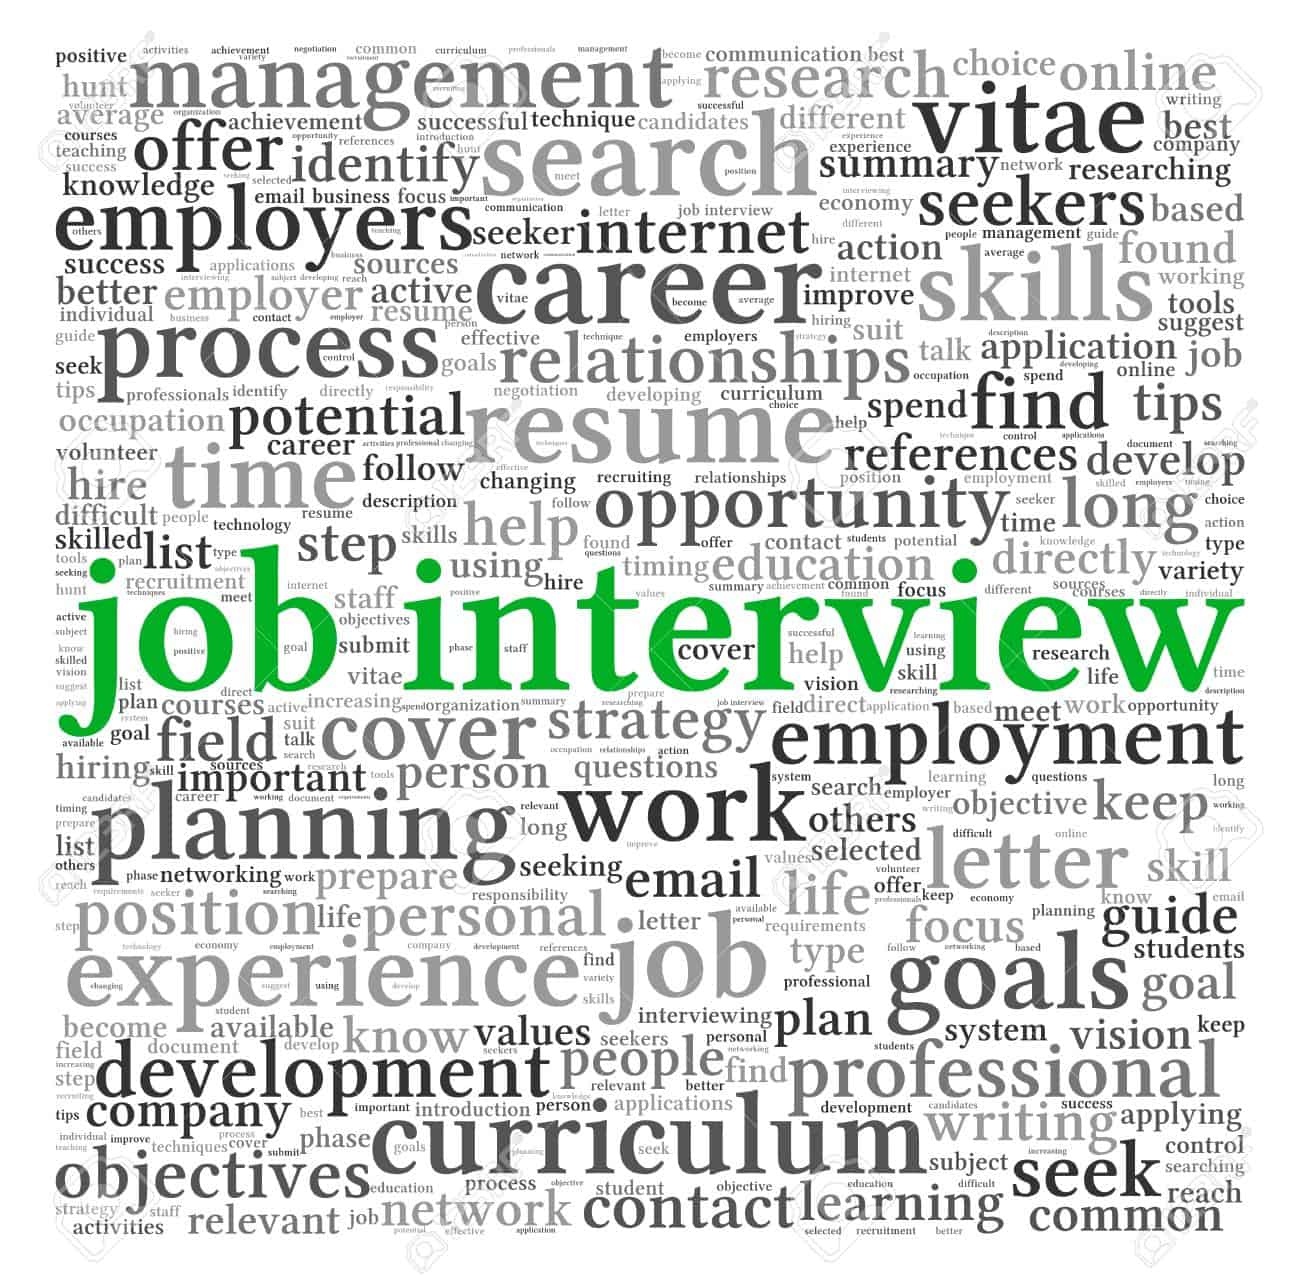 20 sample firefighter interview questions fire recruitment ca mock interview service